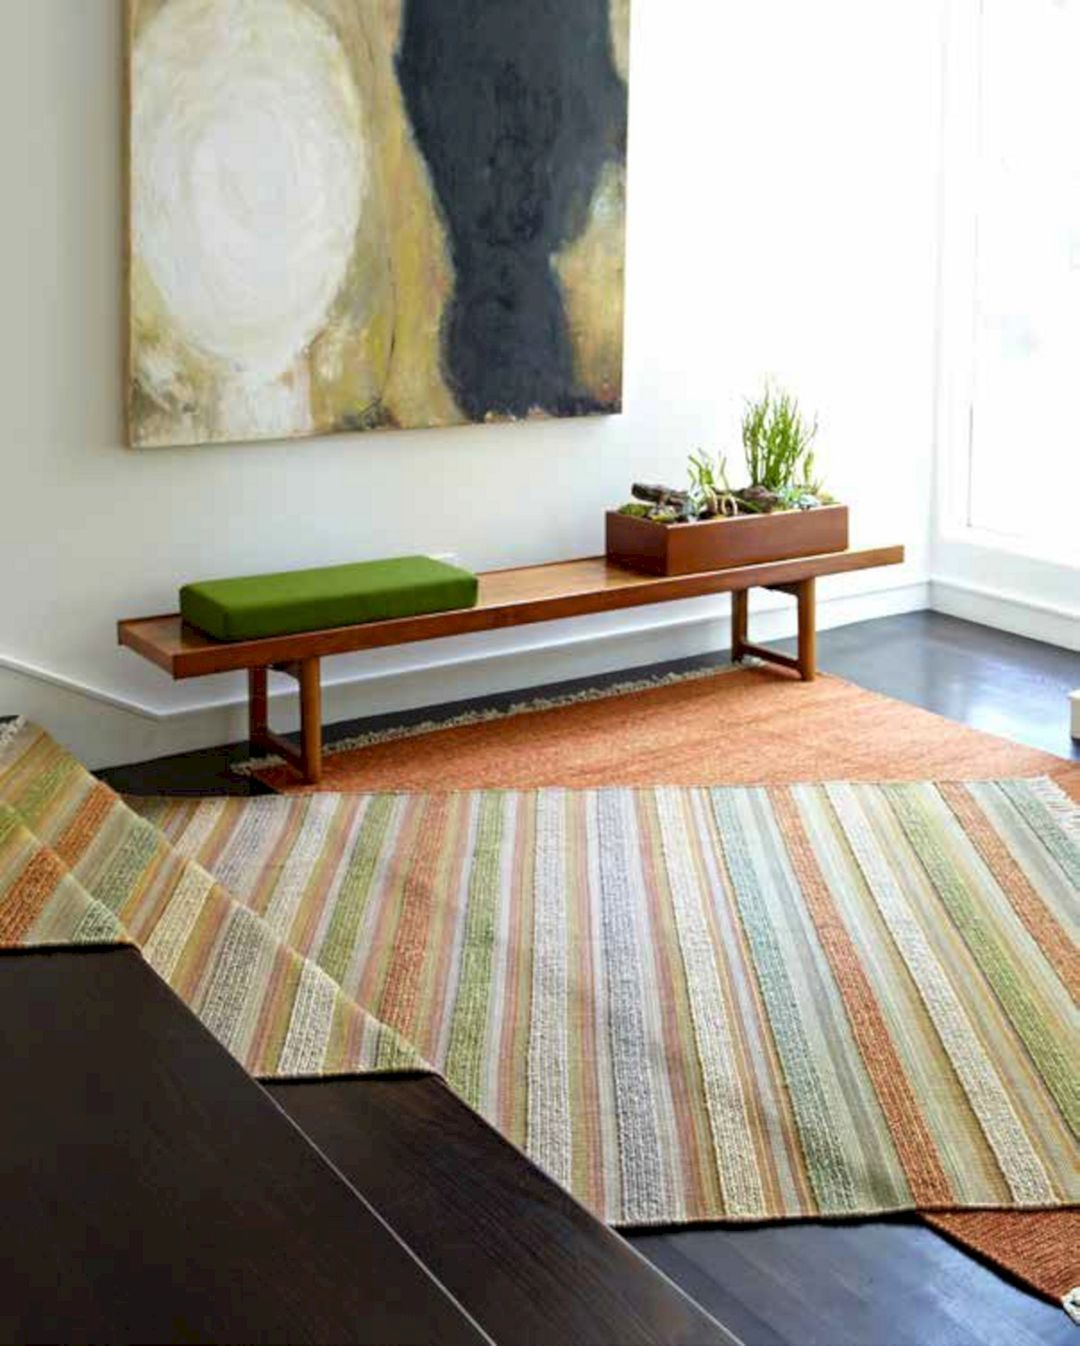 A Rug Can Turn Into Focus In Any Room Especially If You Choose The Color Carefully Little Ears Exact Out Of Place When Over Really Large